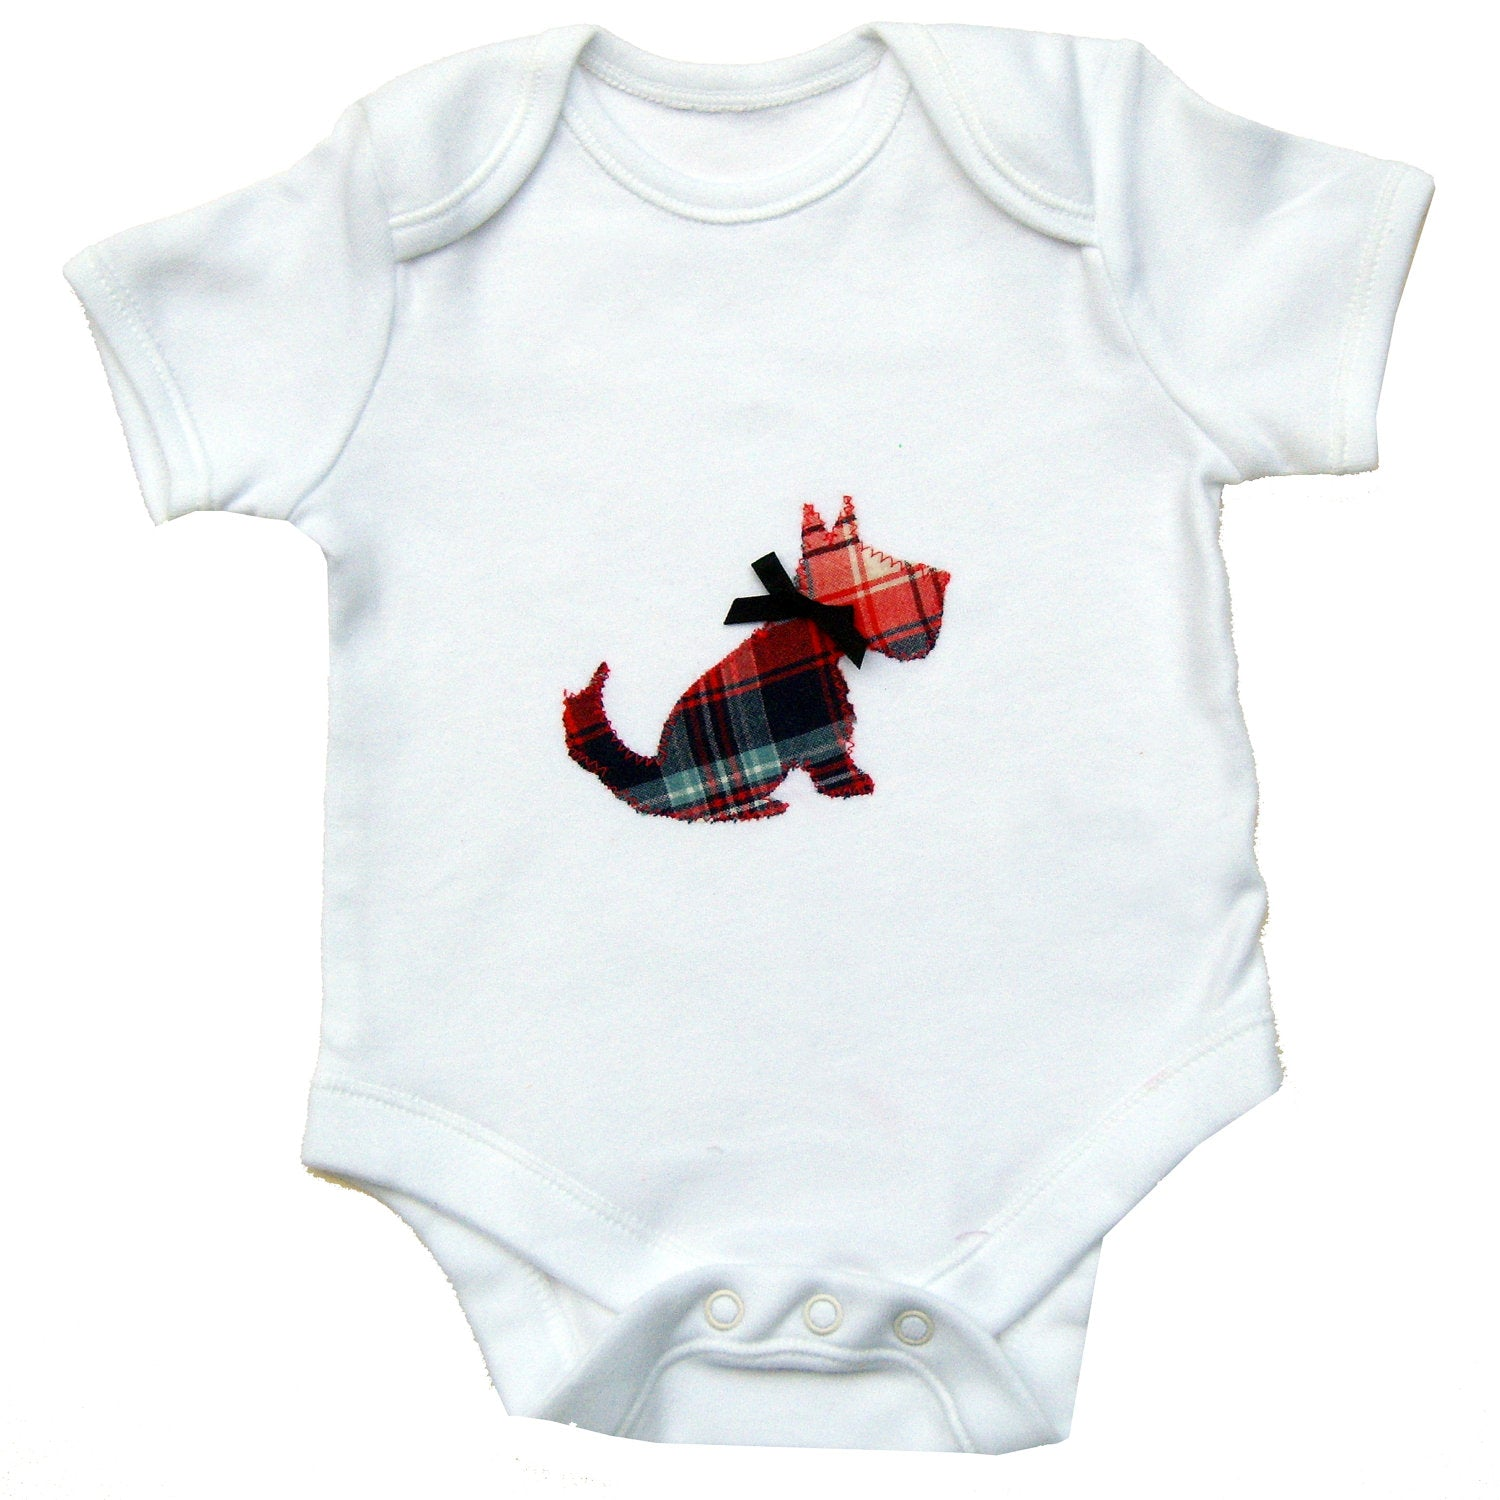 Baby Scottie Dog Bodysuit, Dog Lover, Baby Boy Clothing, Gift for Baby, Dog Baby Shirt